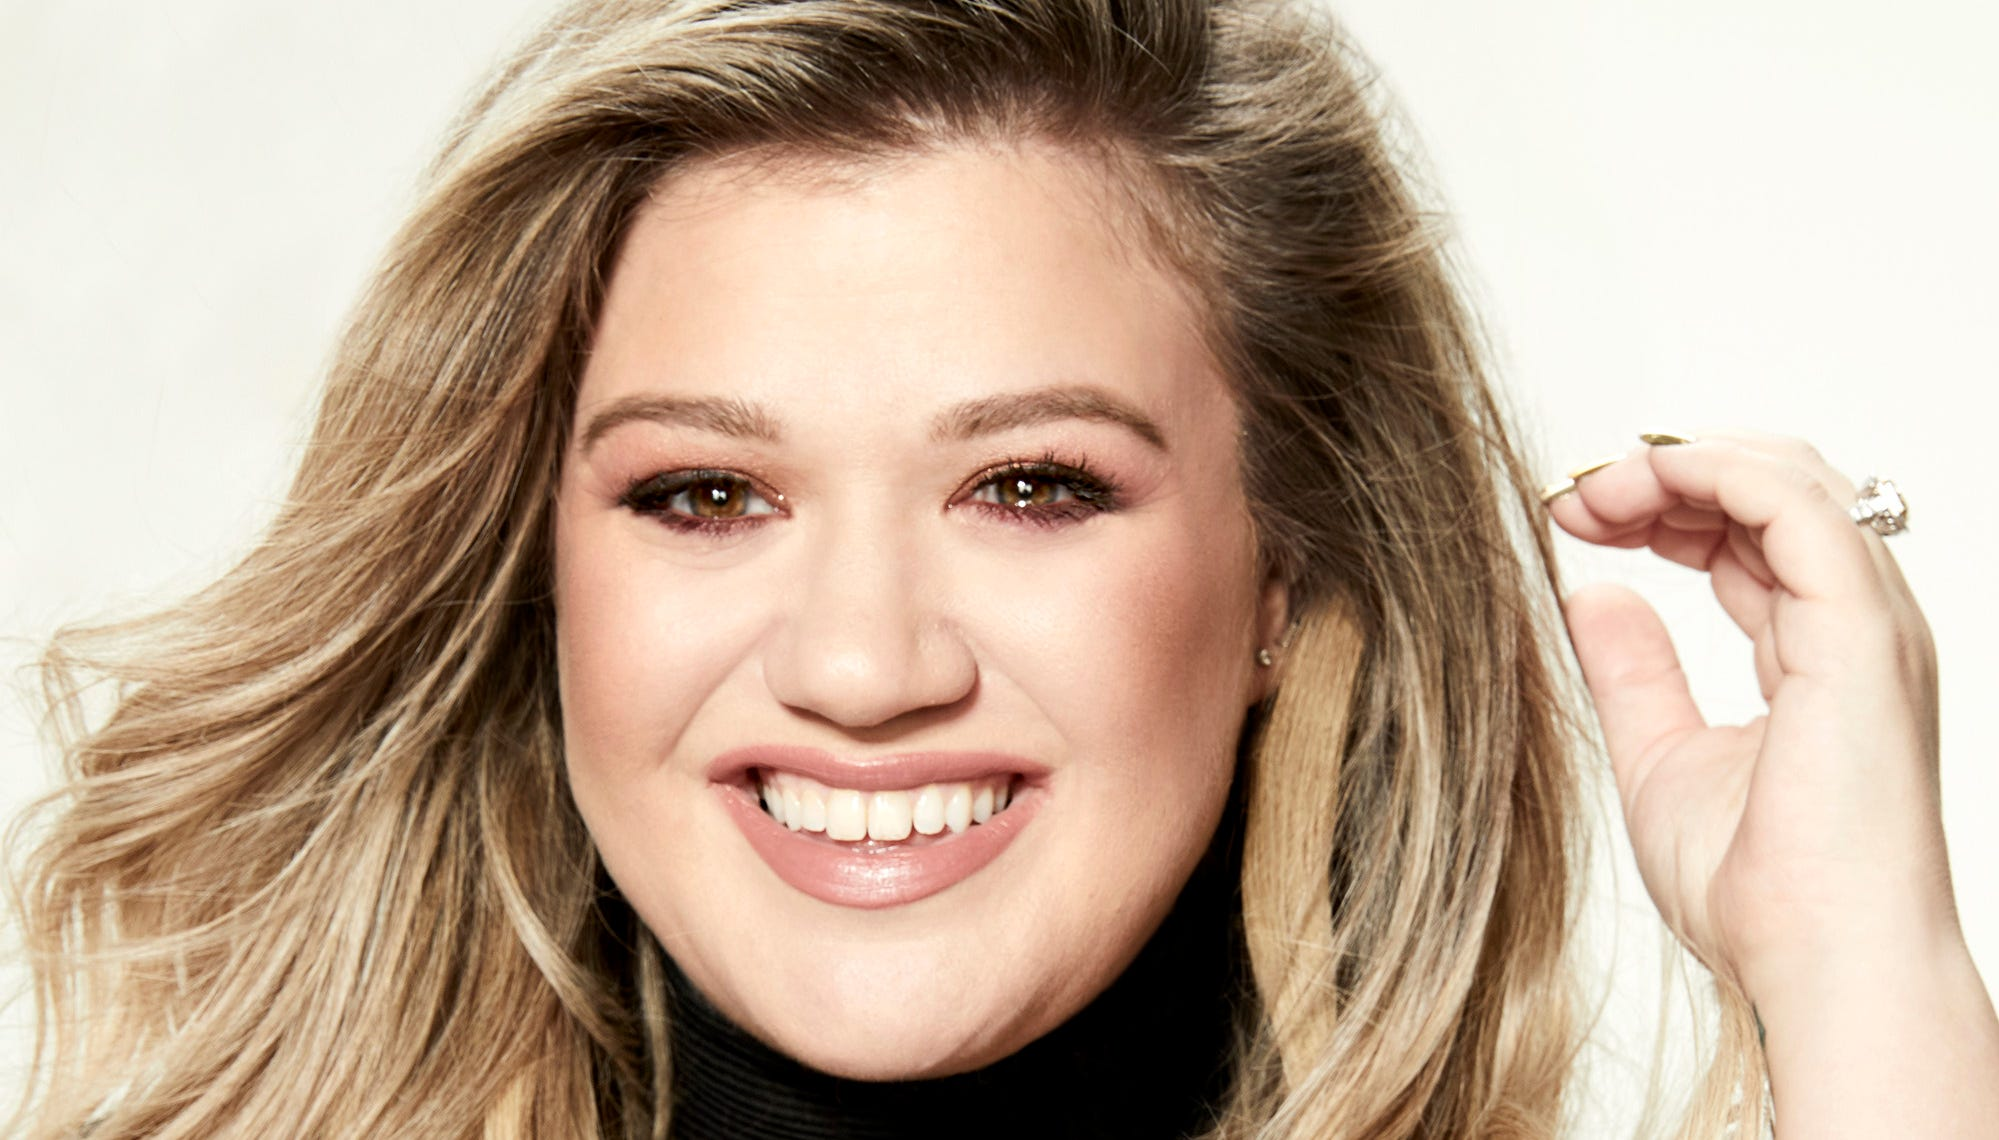 'The Voice' helps Kelly Clarkson expand her brand